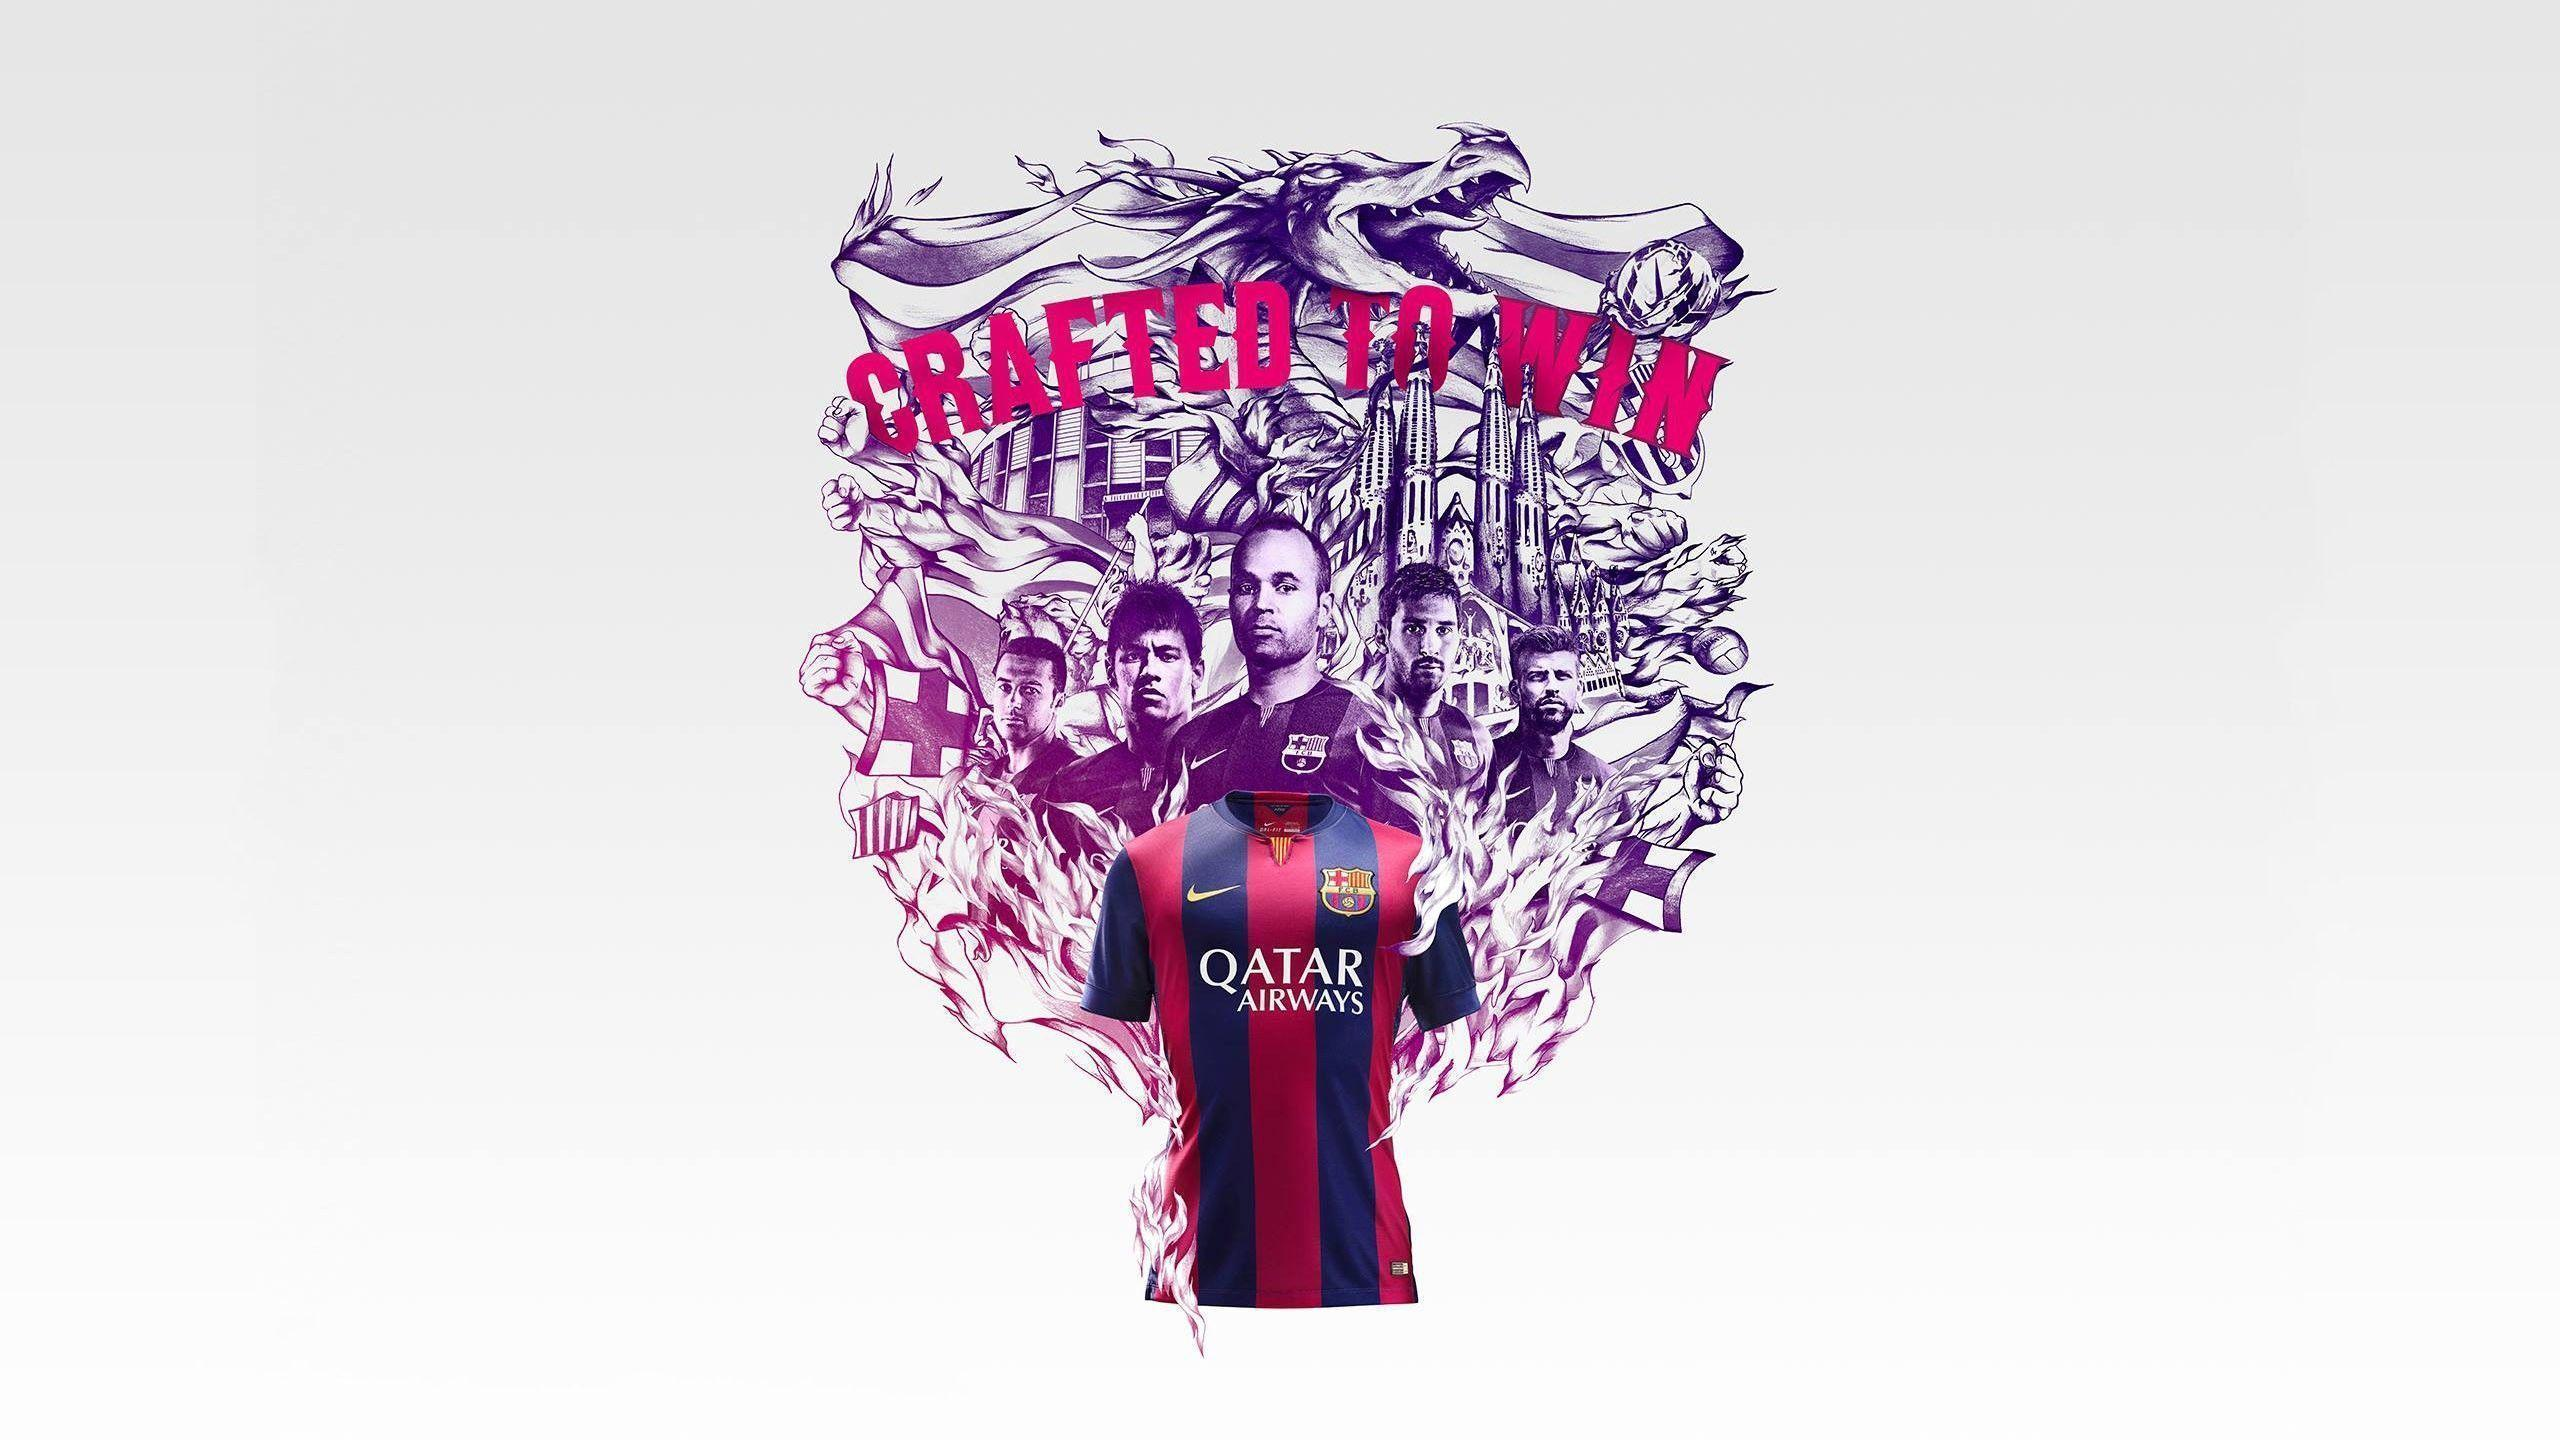 FC Barcelona 2014-2015 New Nike Home Jersey Wallpaper Wide or HD ...